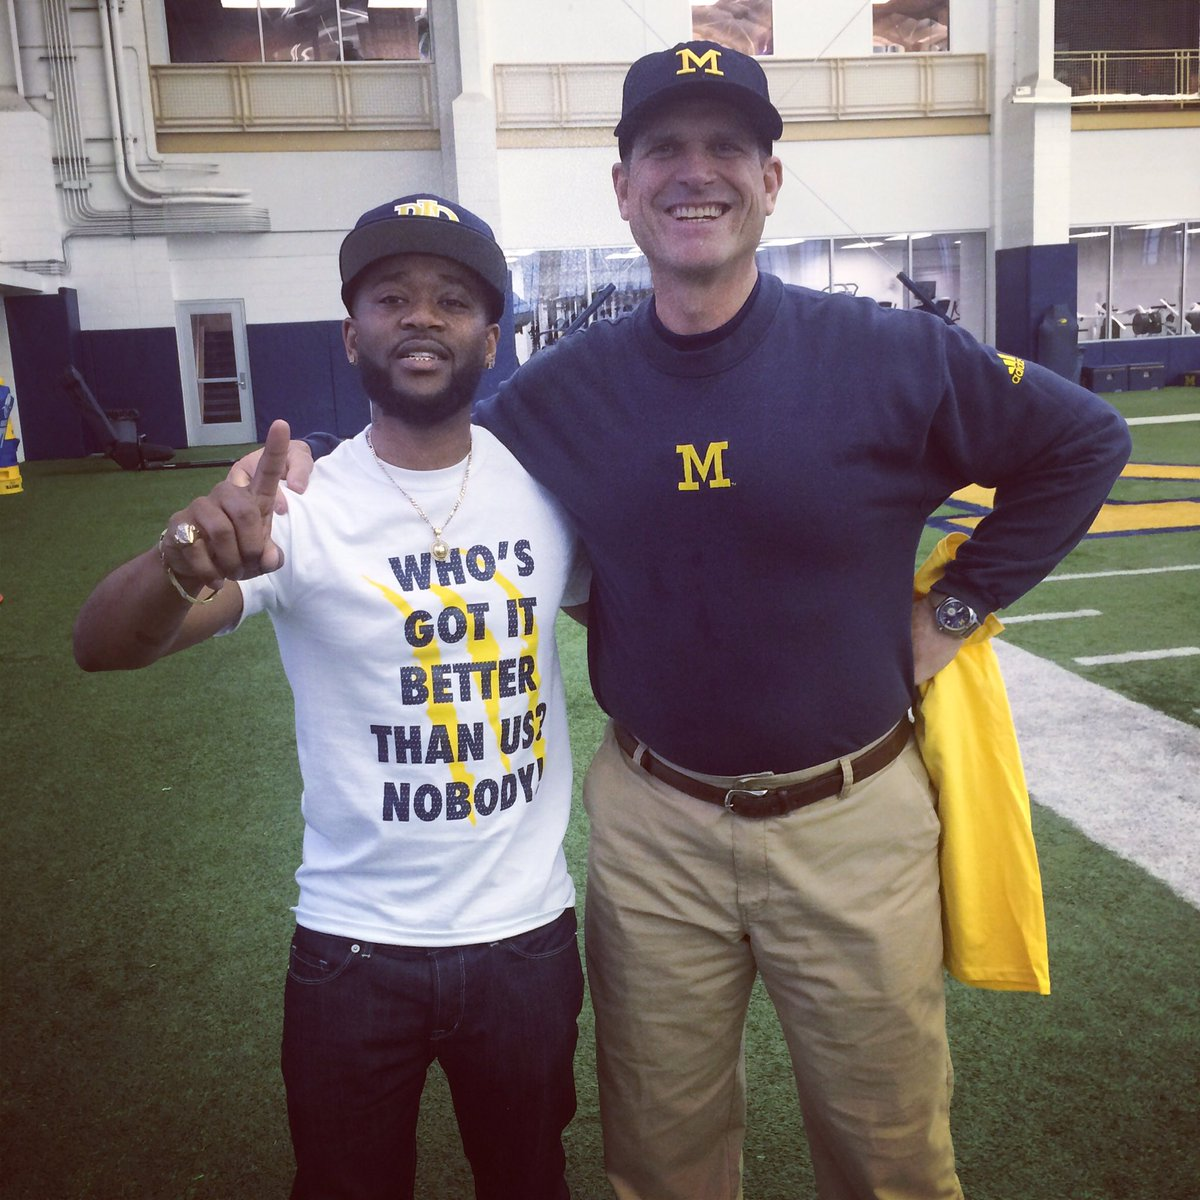 Honored to be taking it up a notch w/ @CoachJim4UM #whosgotitbetterthanus #MichiganWolverines